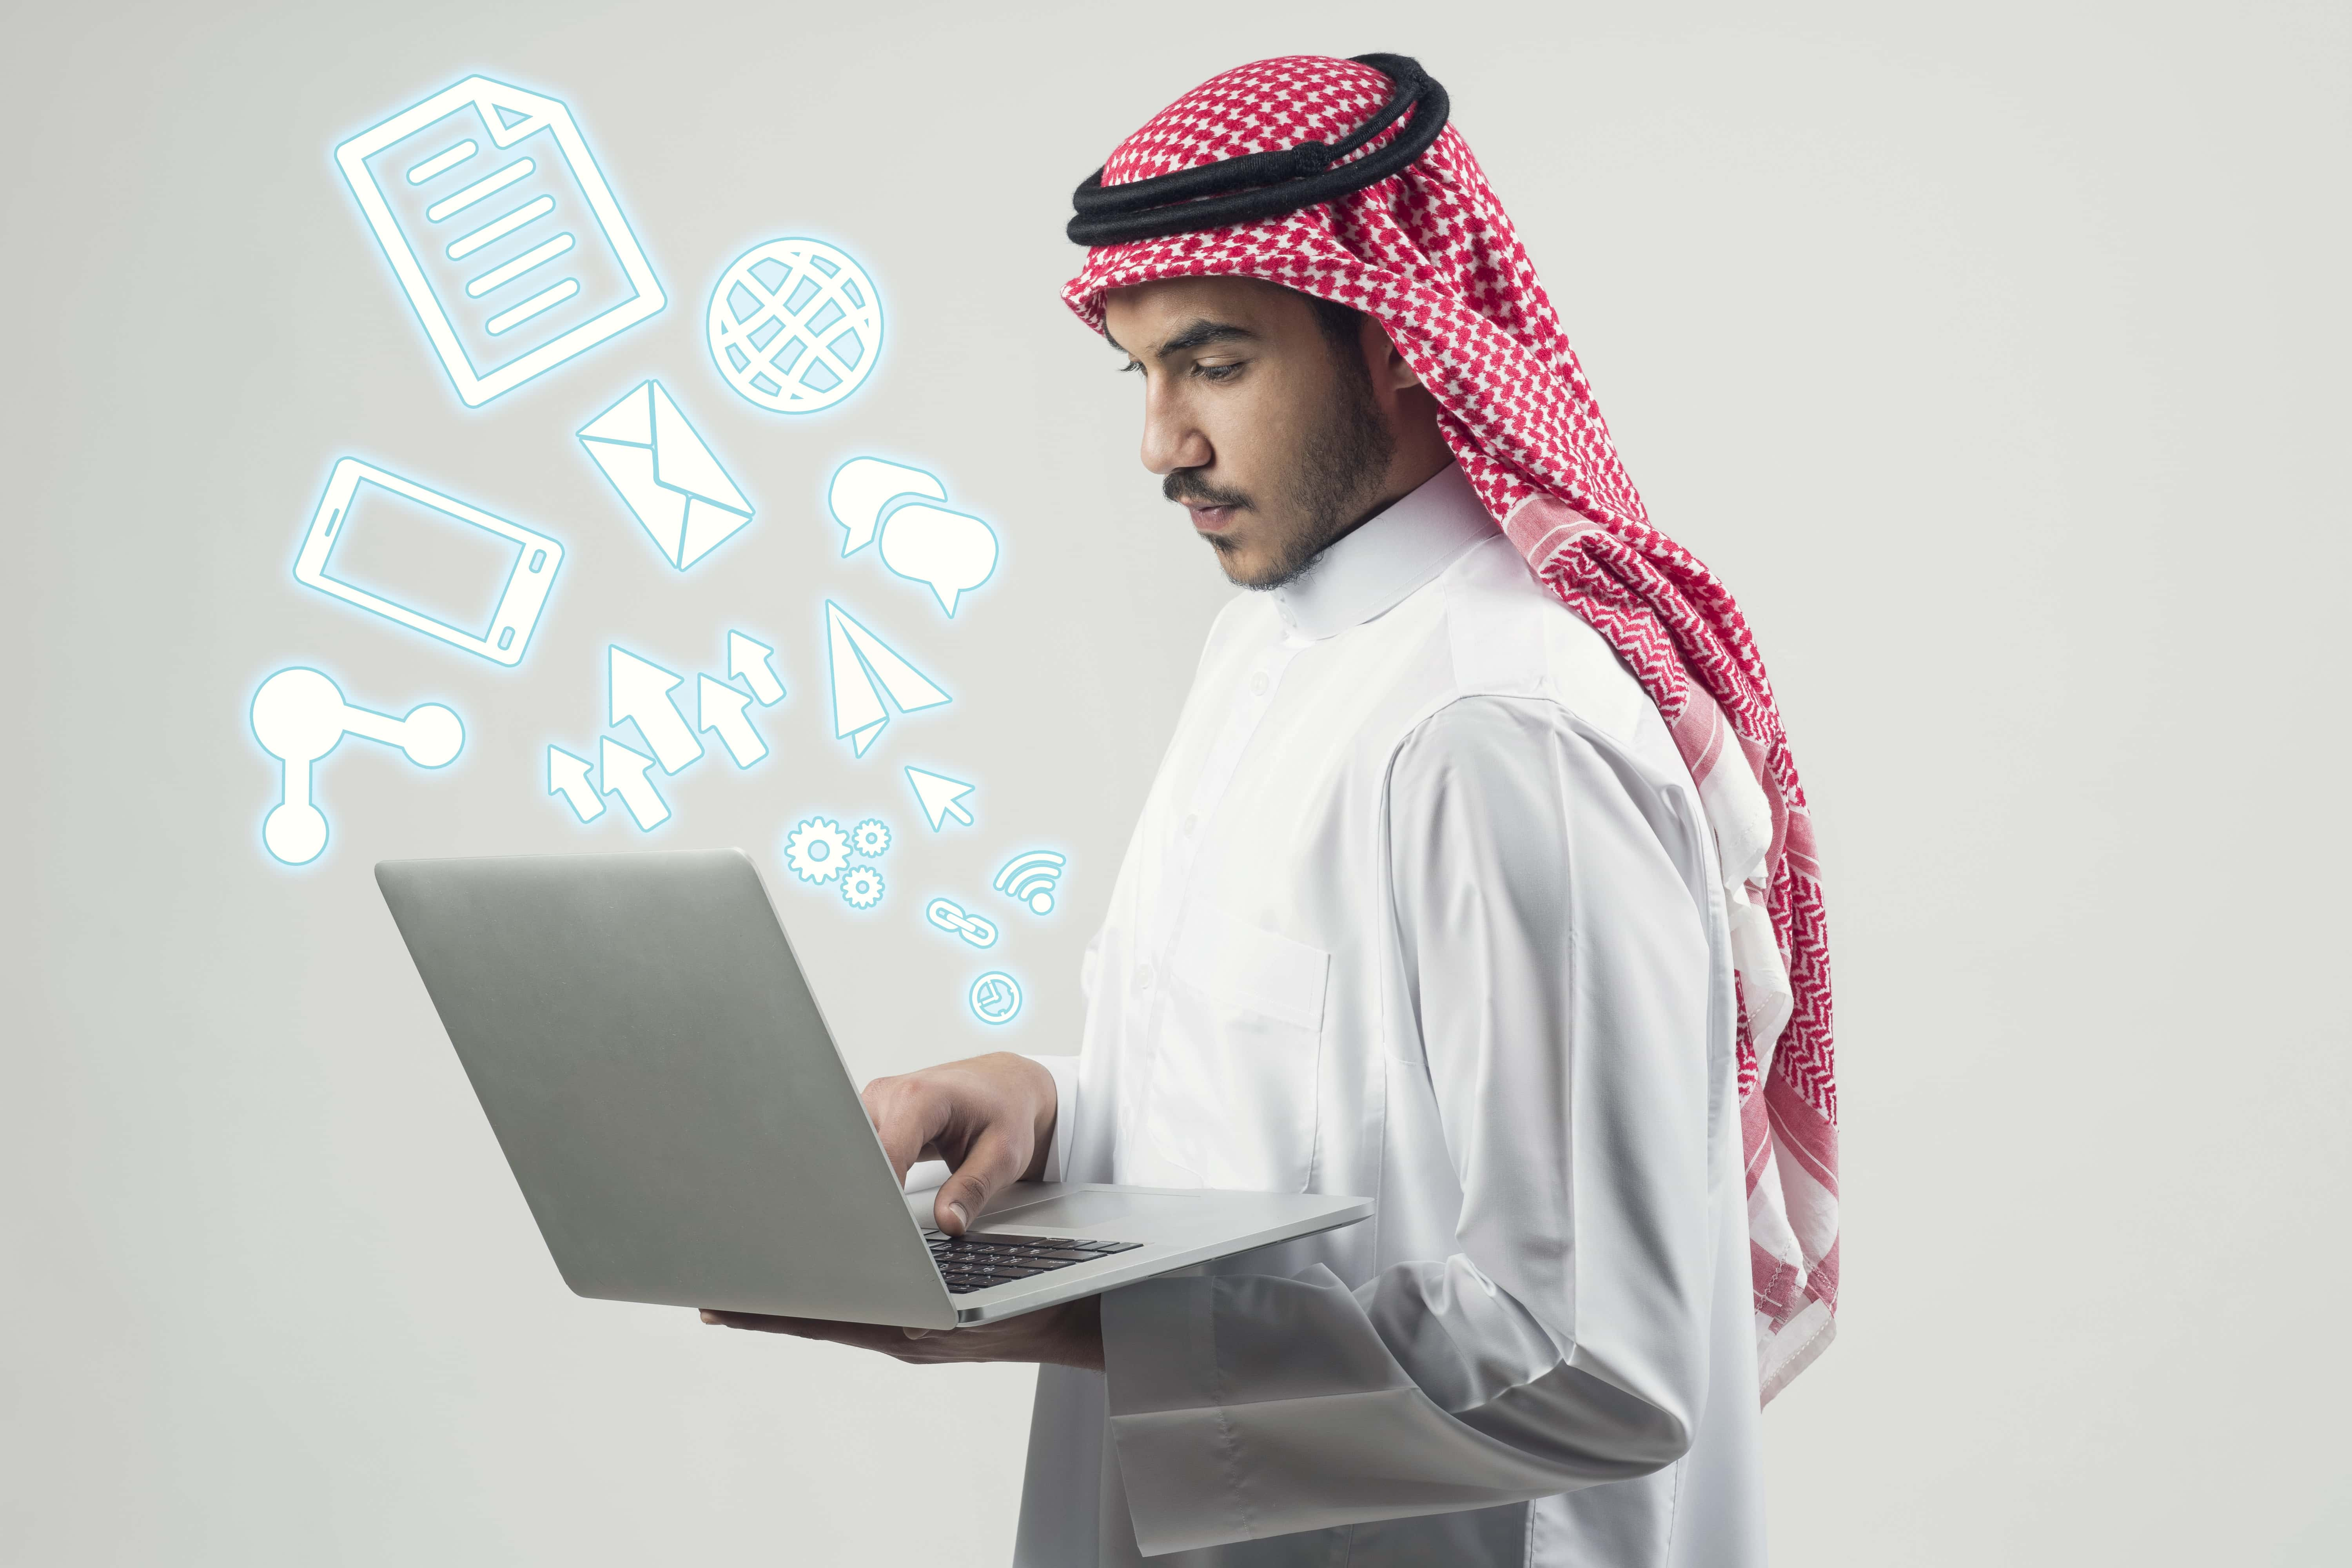 SFCSP joins forces with VirtuPort to provide quality IT training to talented Saudi youths